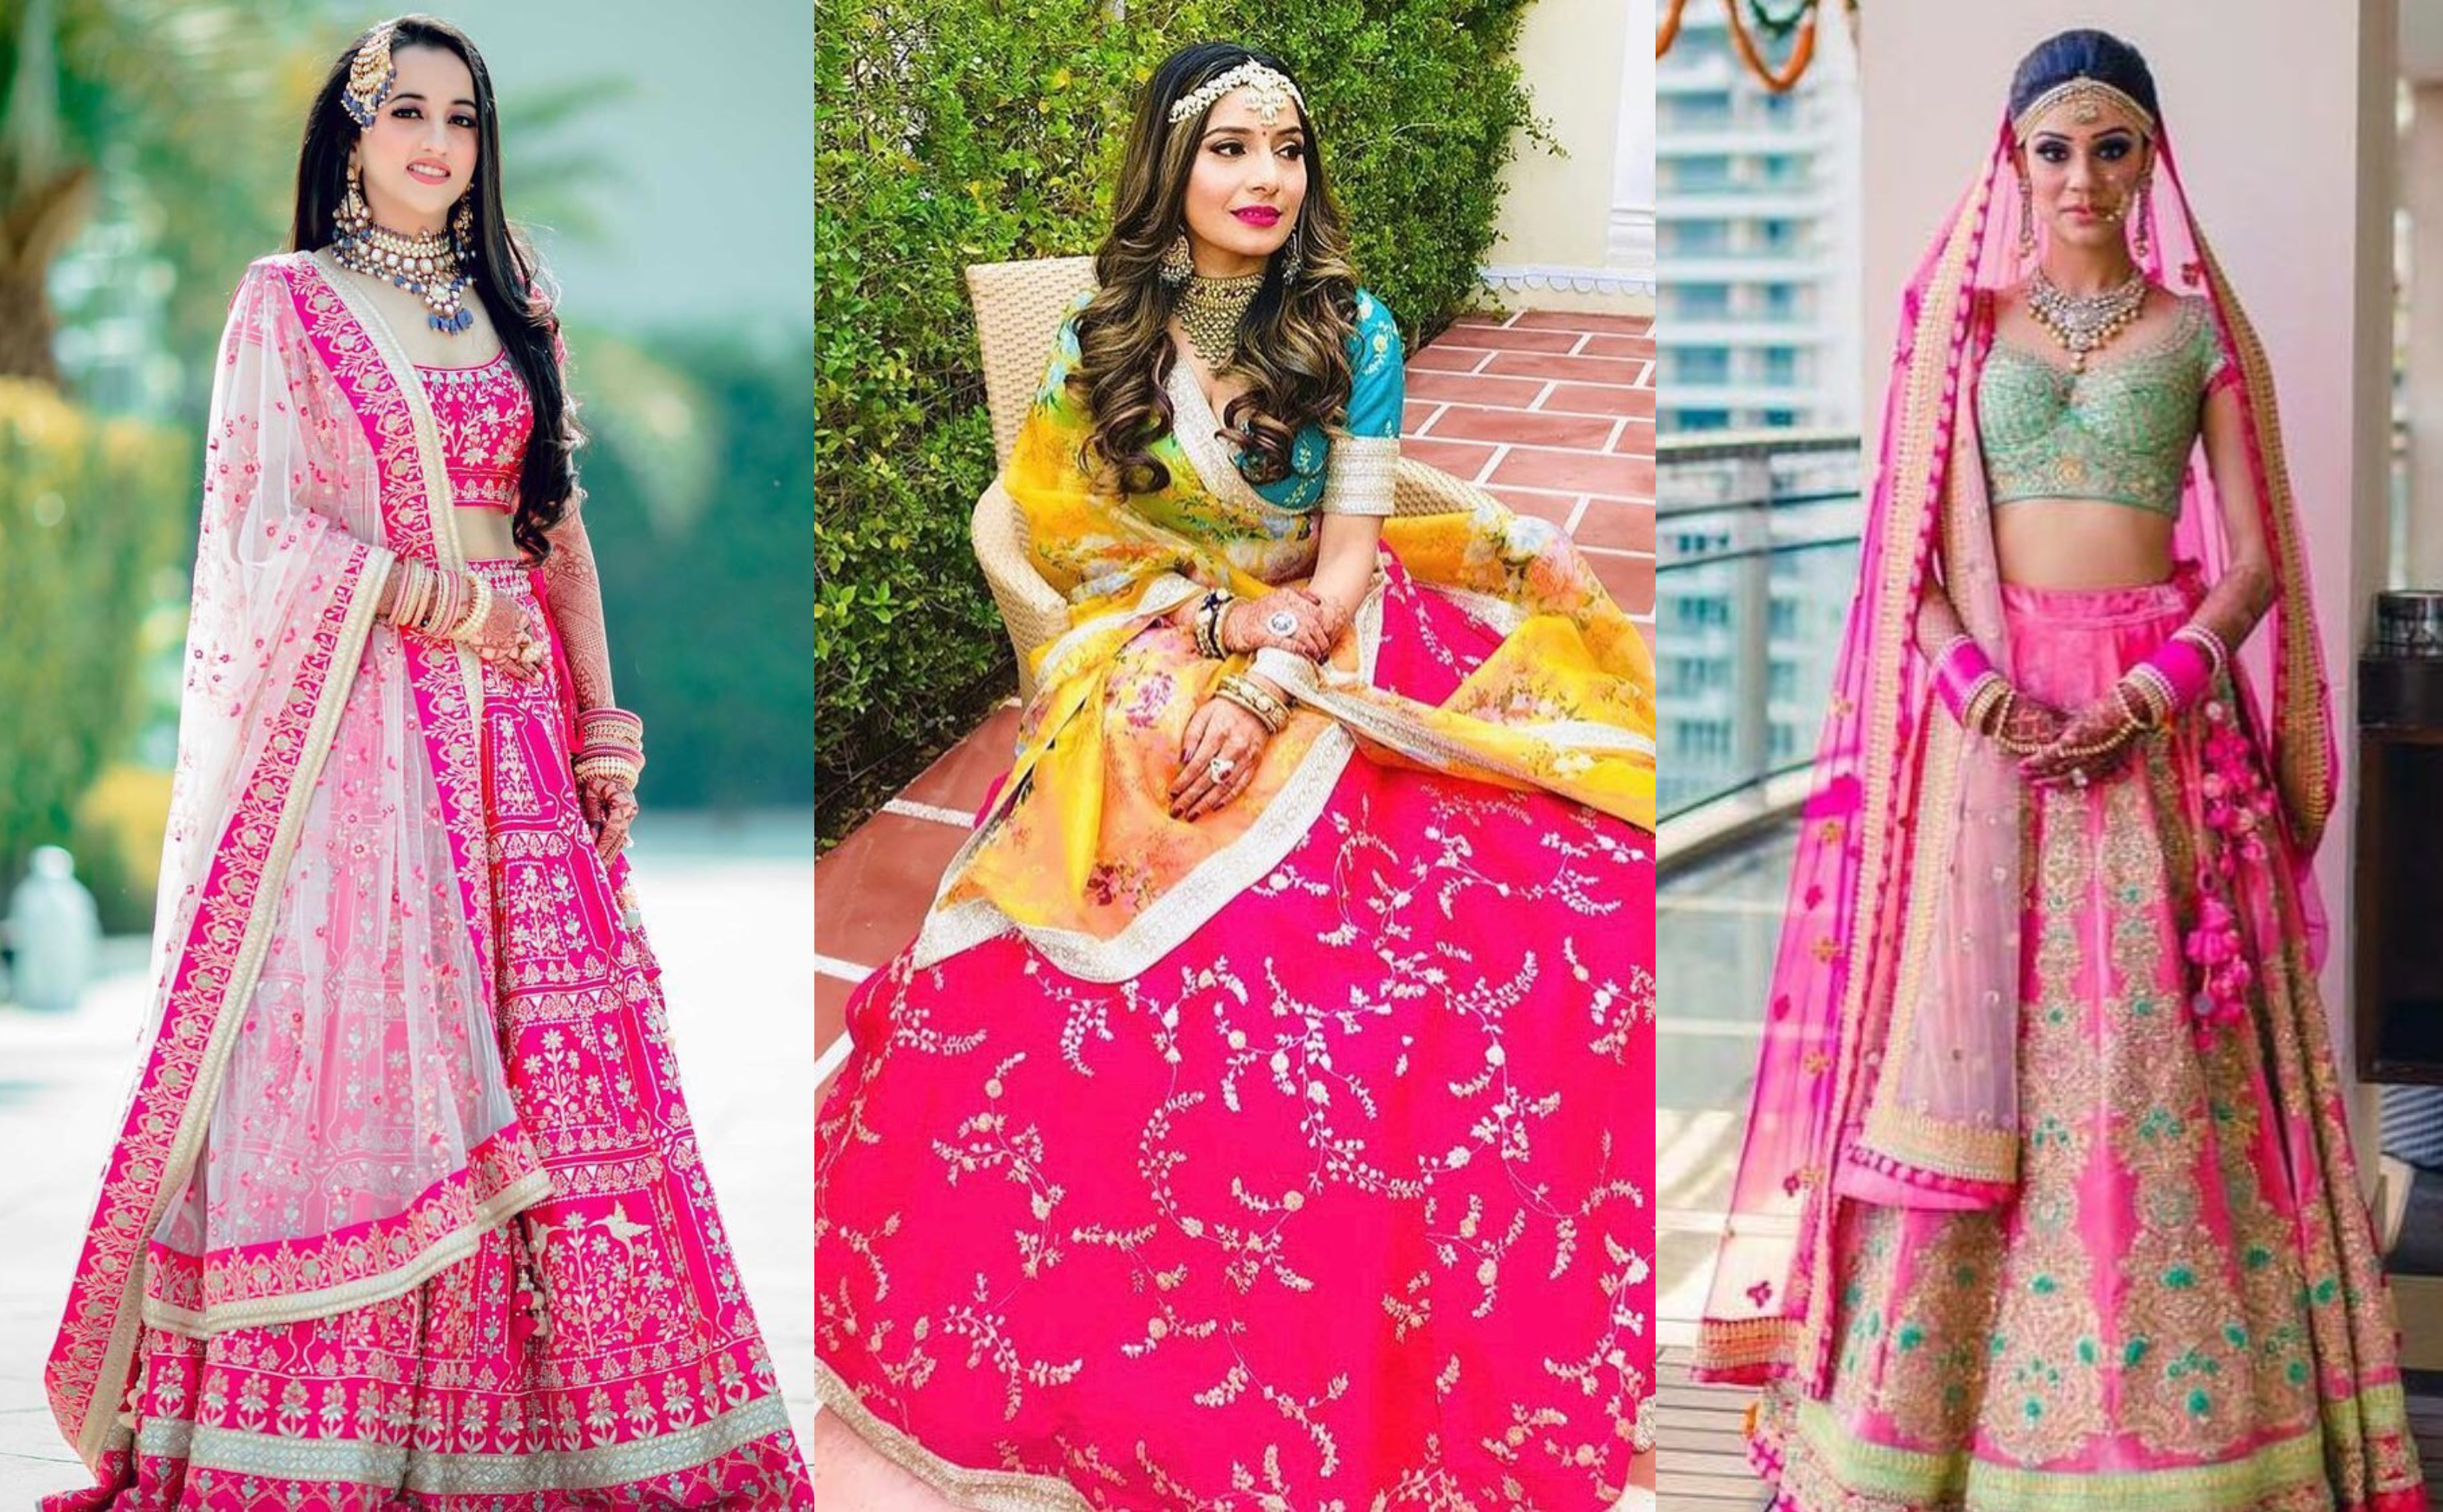 13 Different Modern Ways To Amp Up Your Pink Bridal Lehenga Shaadisaga Pragathi.com has unique collection of traditional lehenga with free stitching and free shipping offers across the globe. pink bridal lehenga